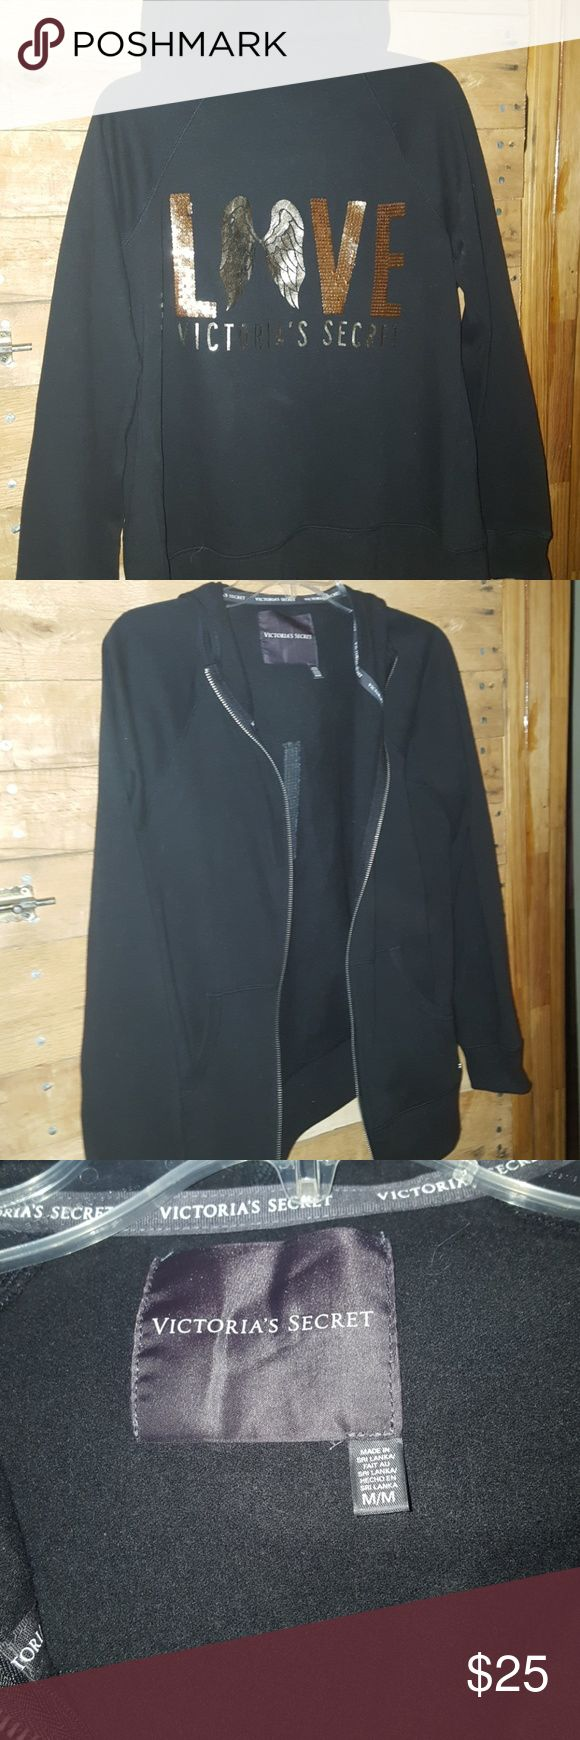 Victora Secret Jacket Black with gold detail on back. Have a Small available Offers will be considered. Victoria's Secret Tops Sweatshirts & Hoodies